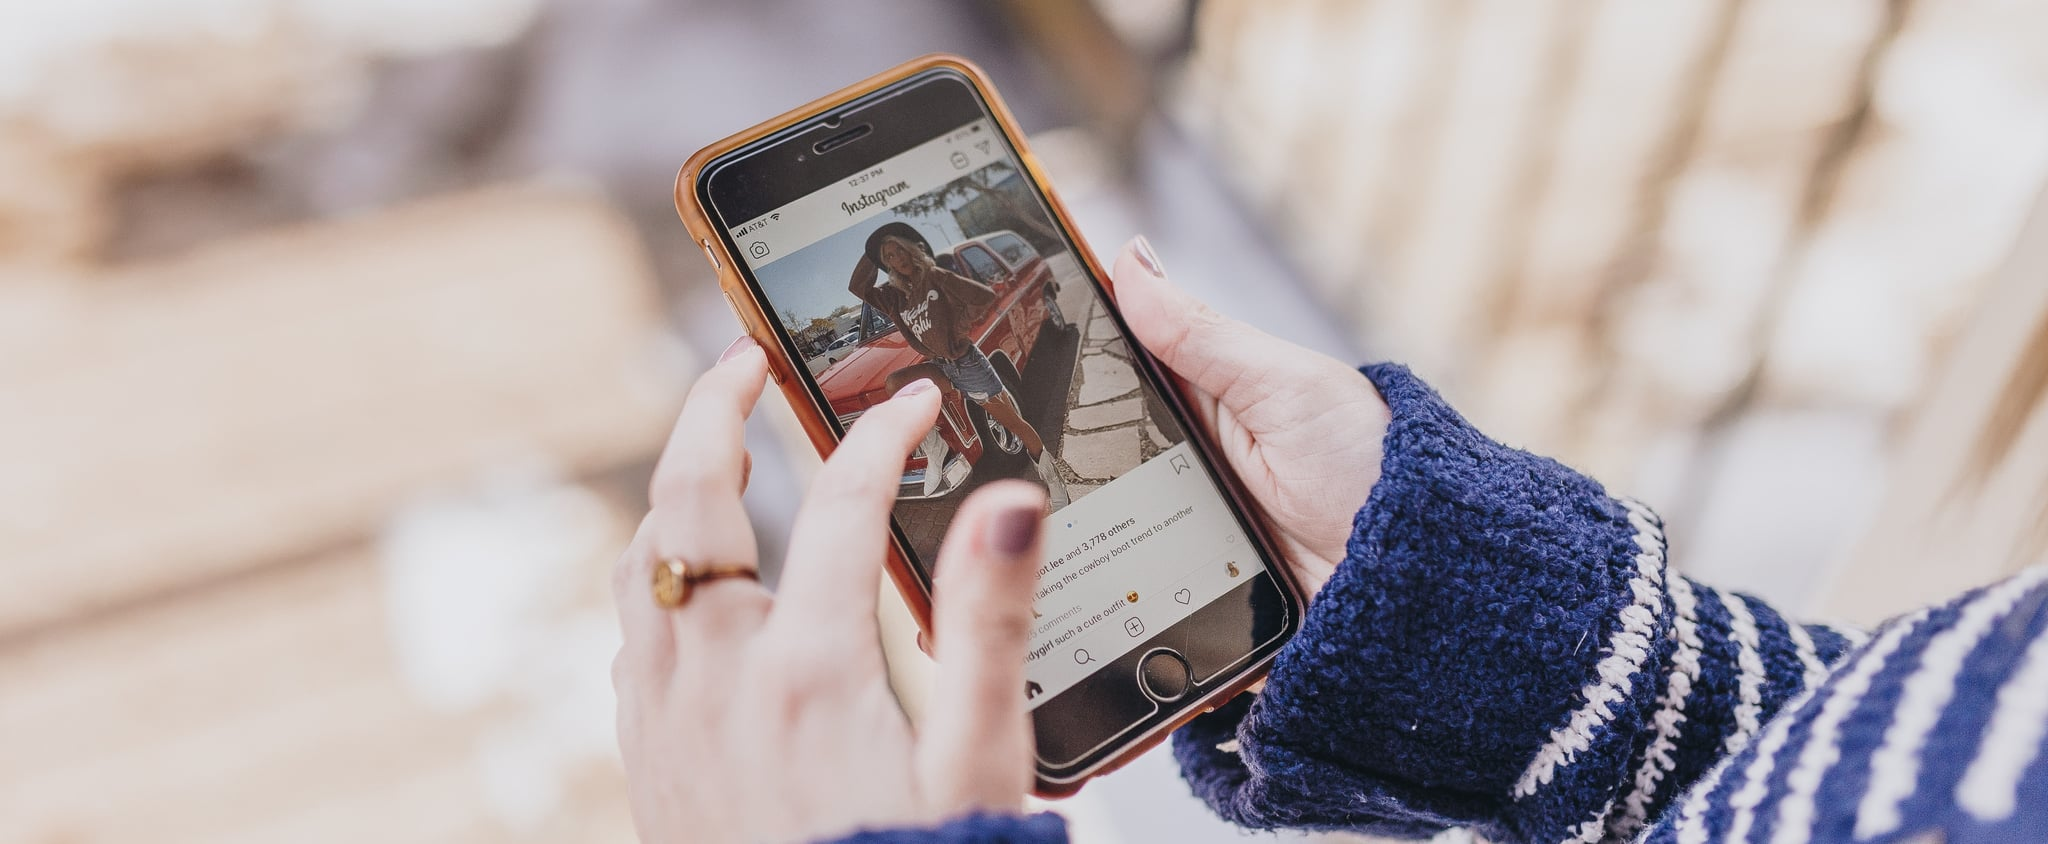 How to Add a Link to an Instagram Story